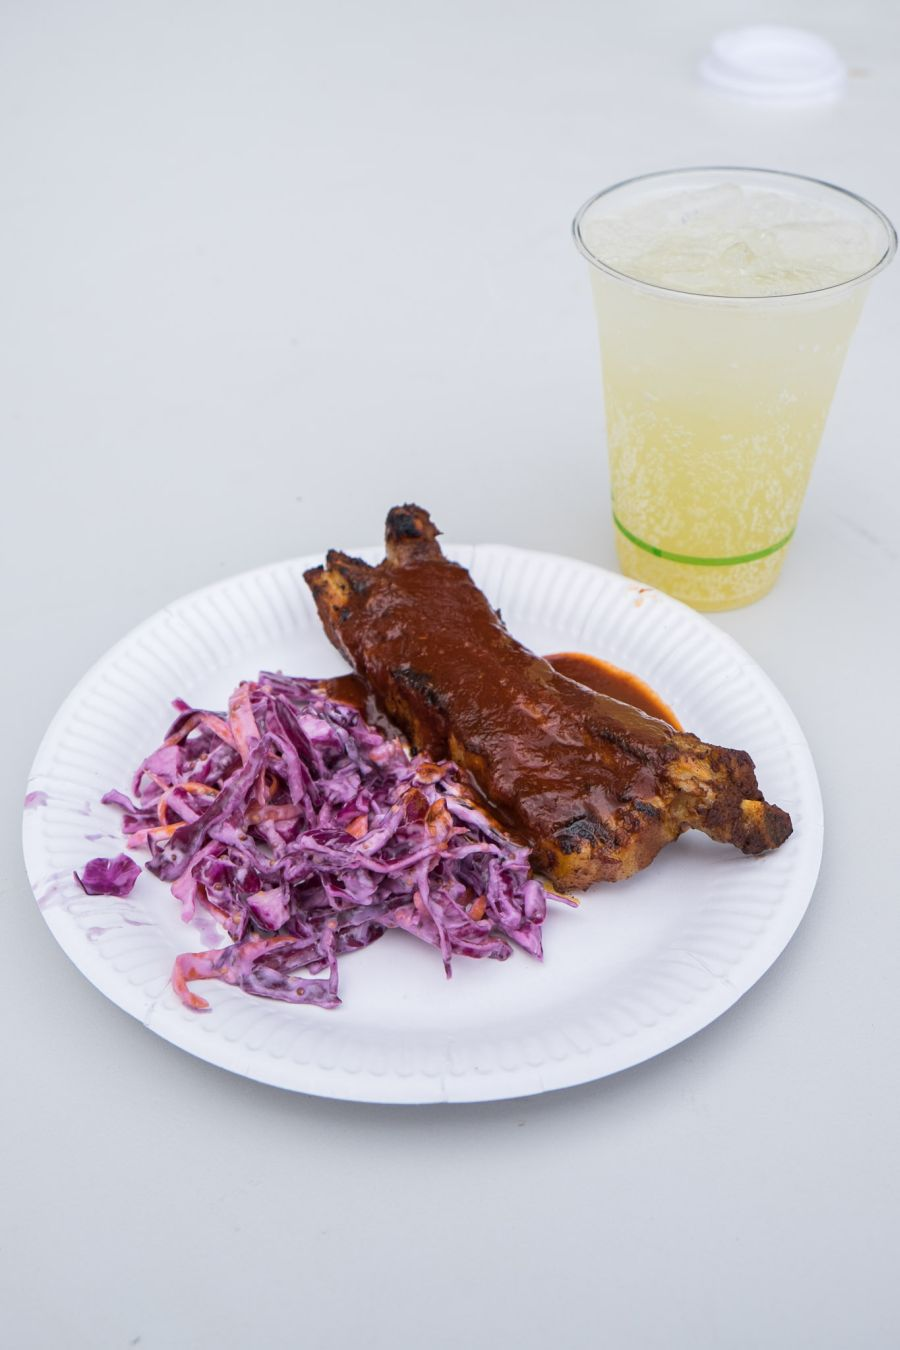 Boss Hoss BBQ Smokin' Ribs with coleslaw (AU$12)